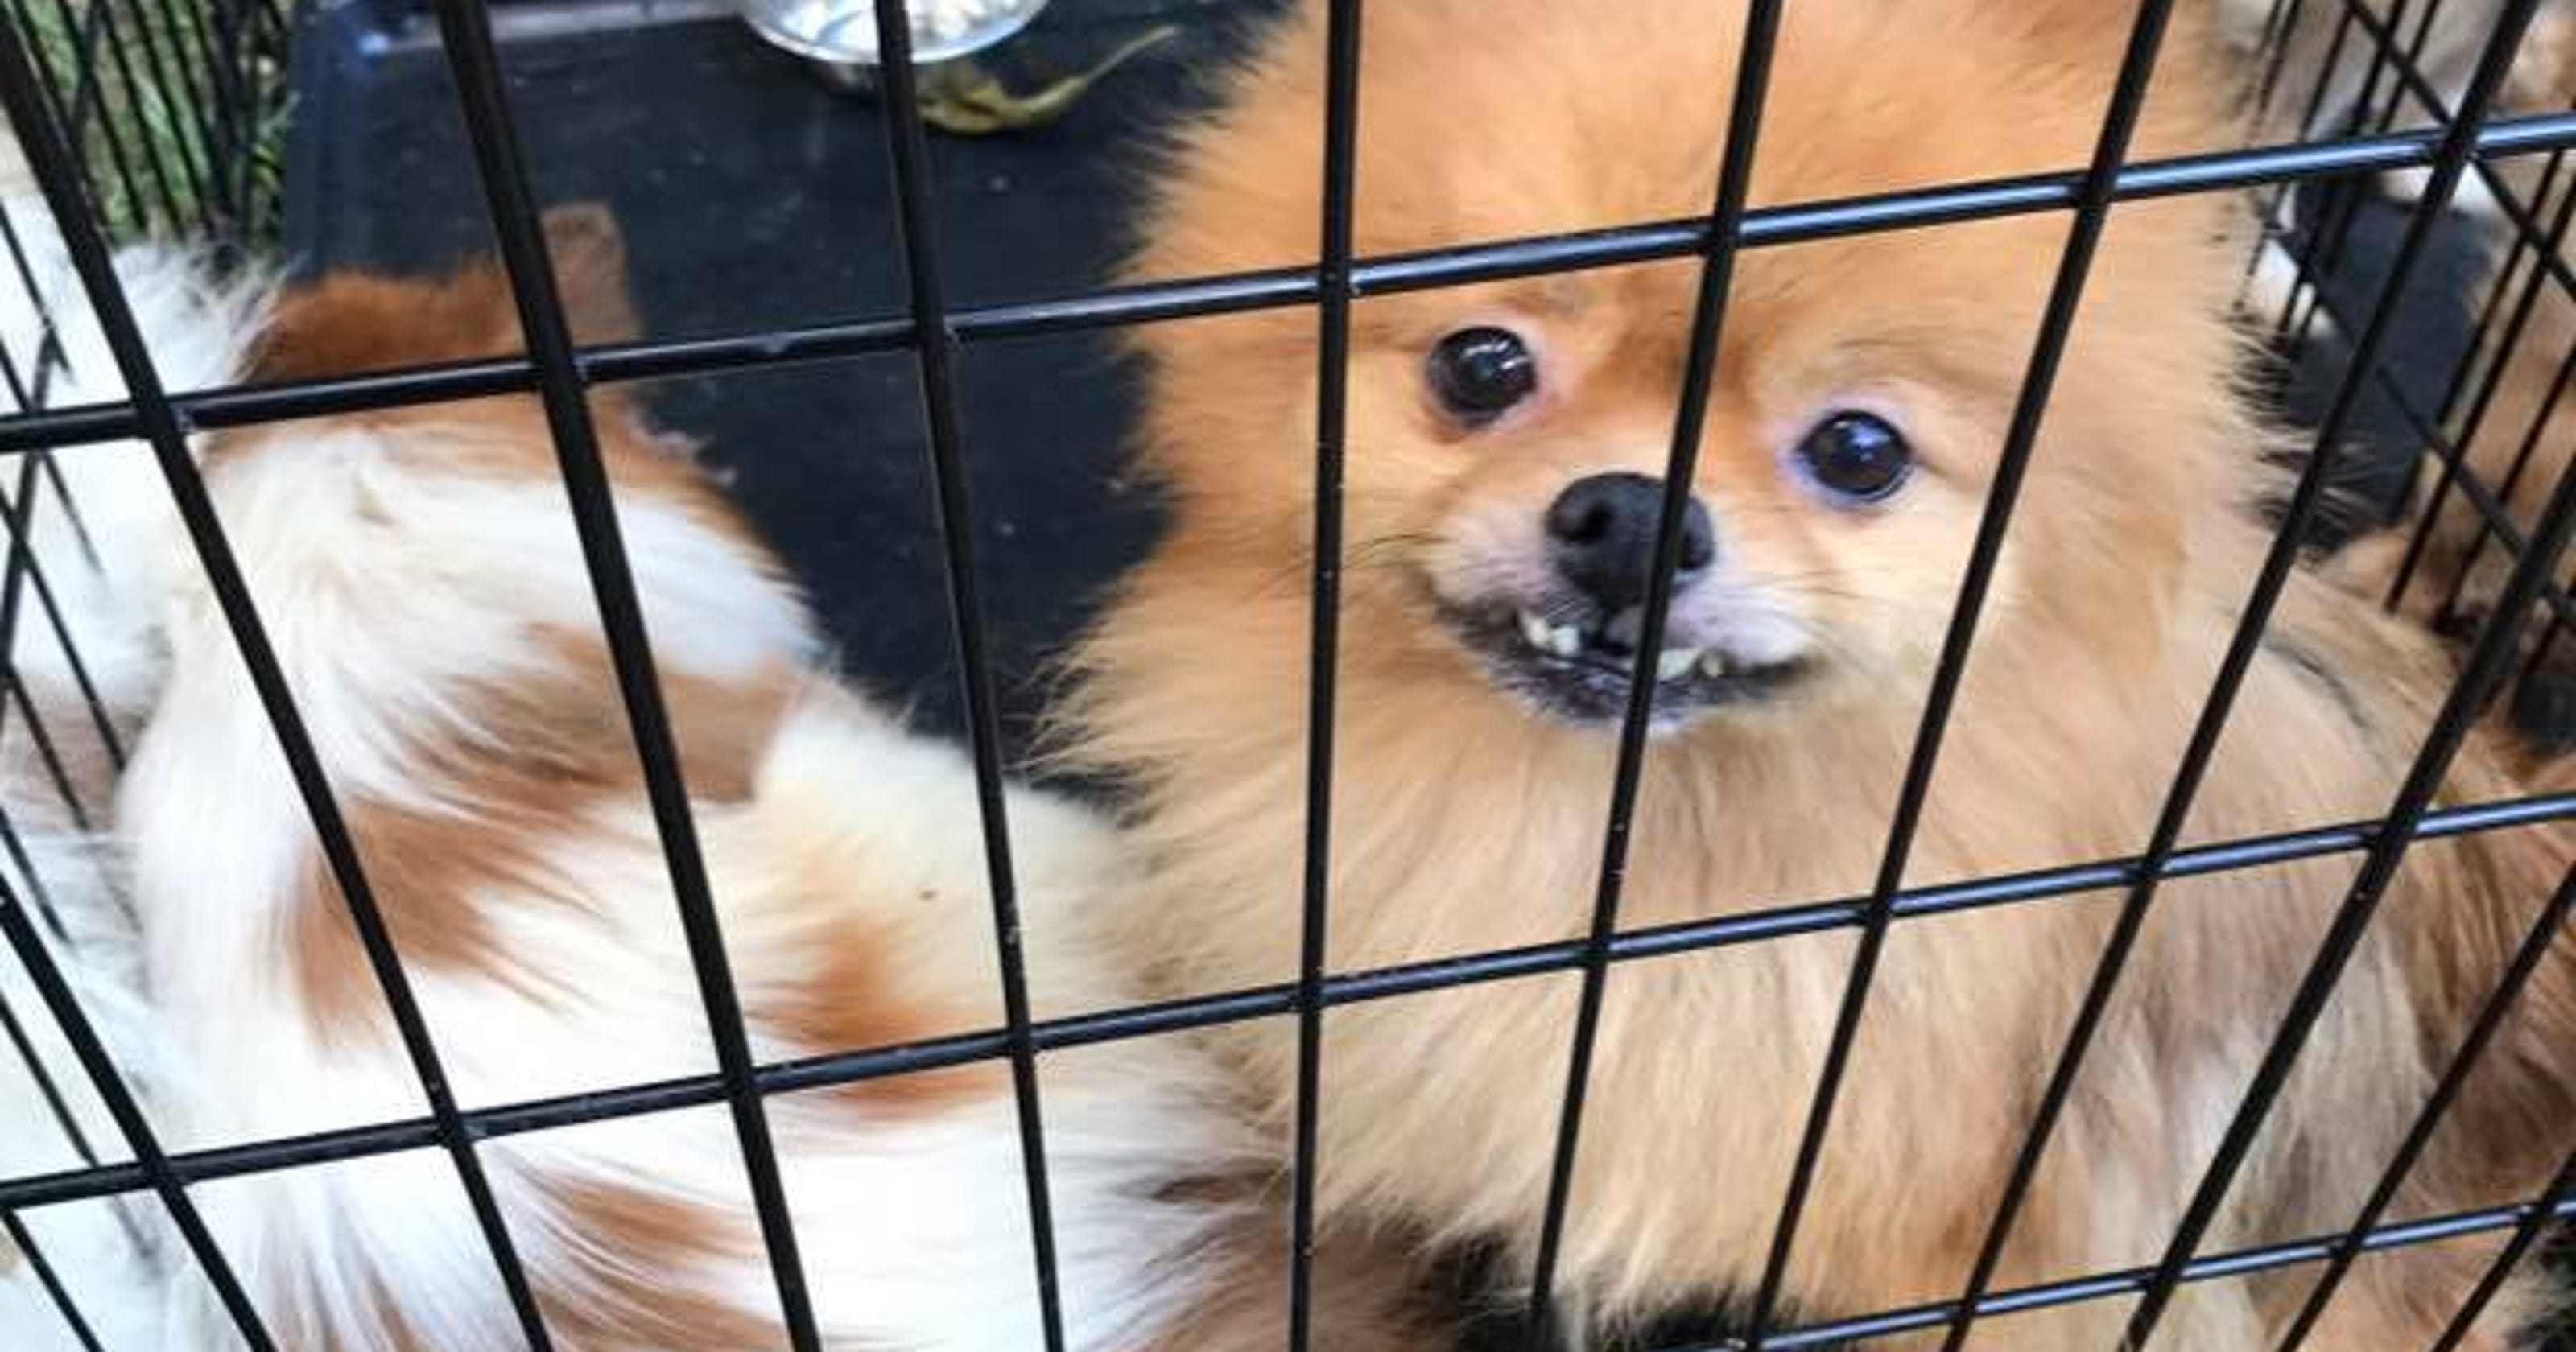 27 Pomeranians, a parrot and a 6-year-old boy rescued from